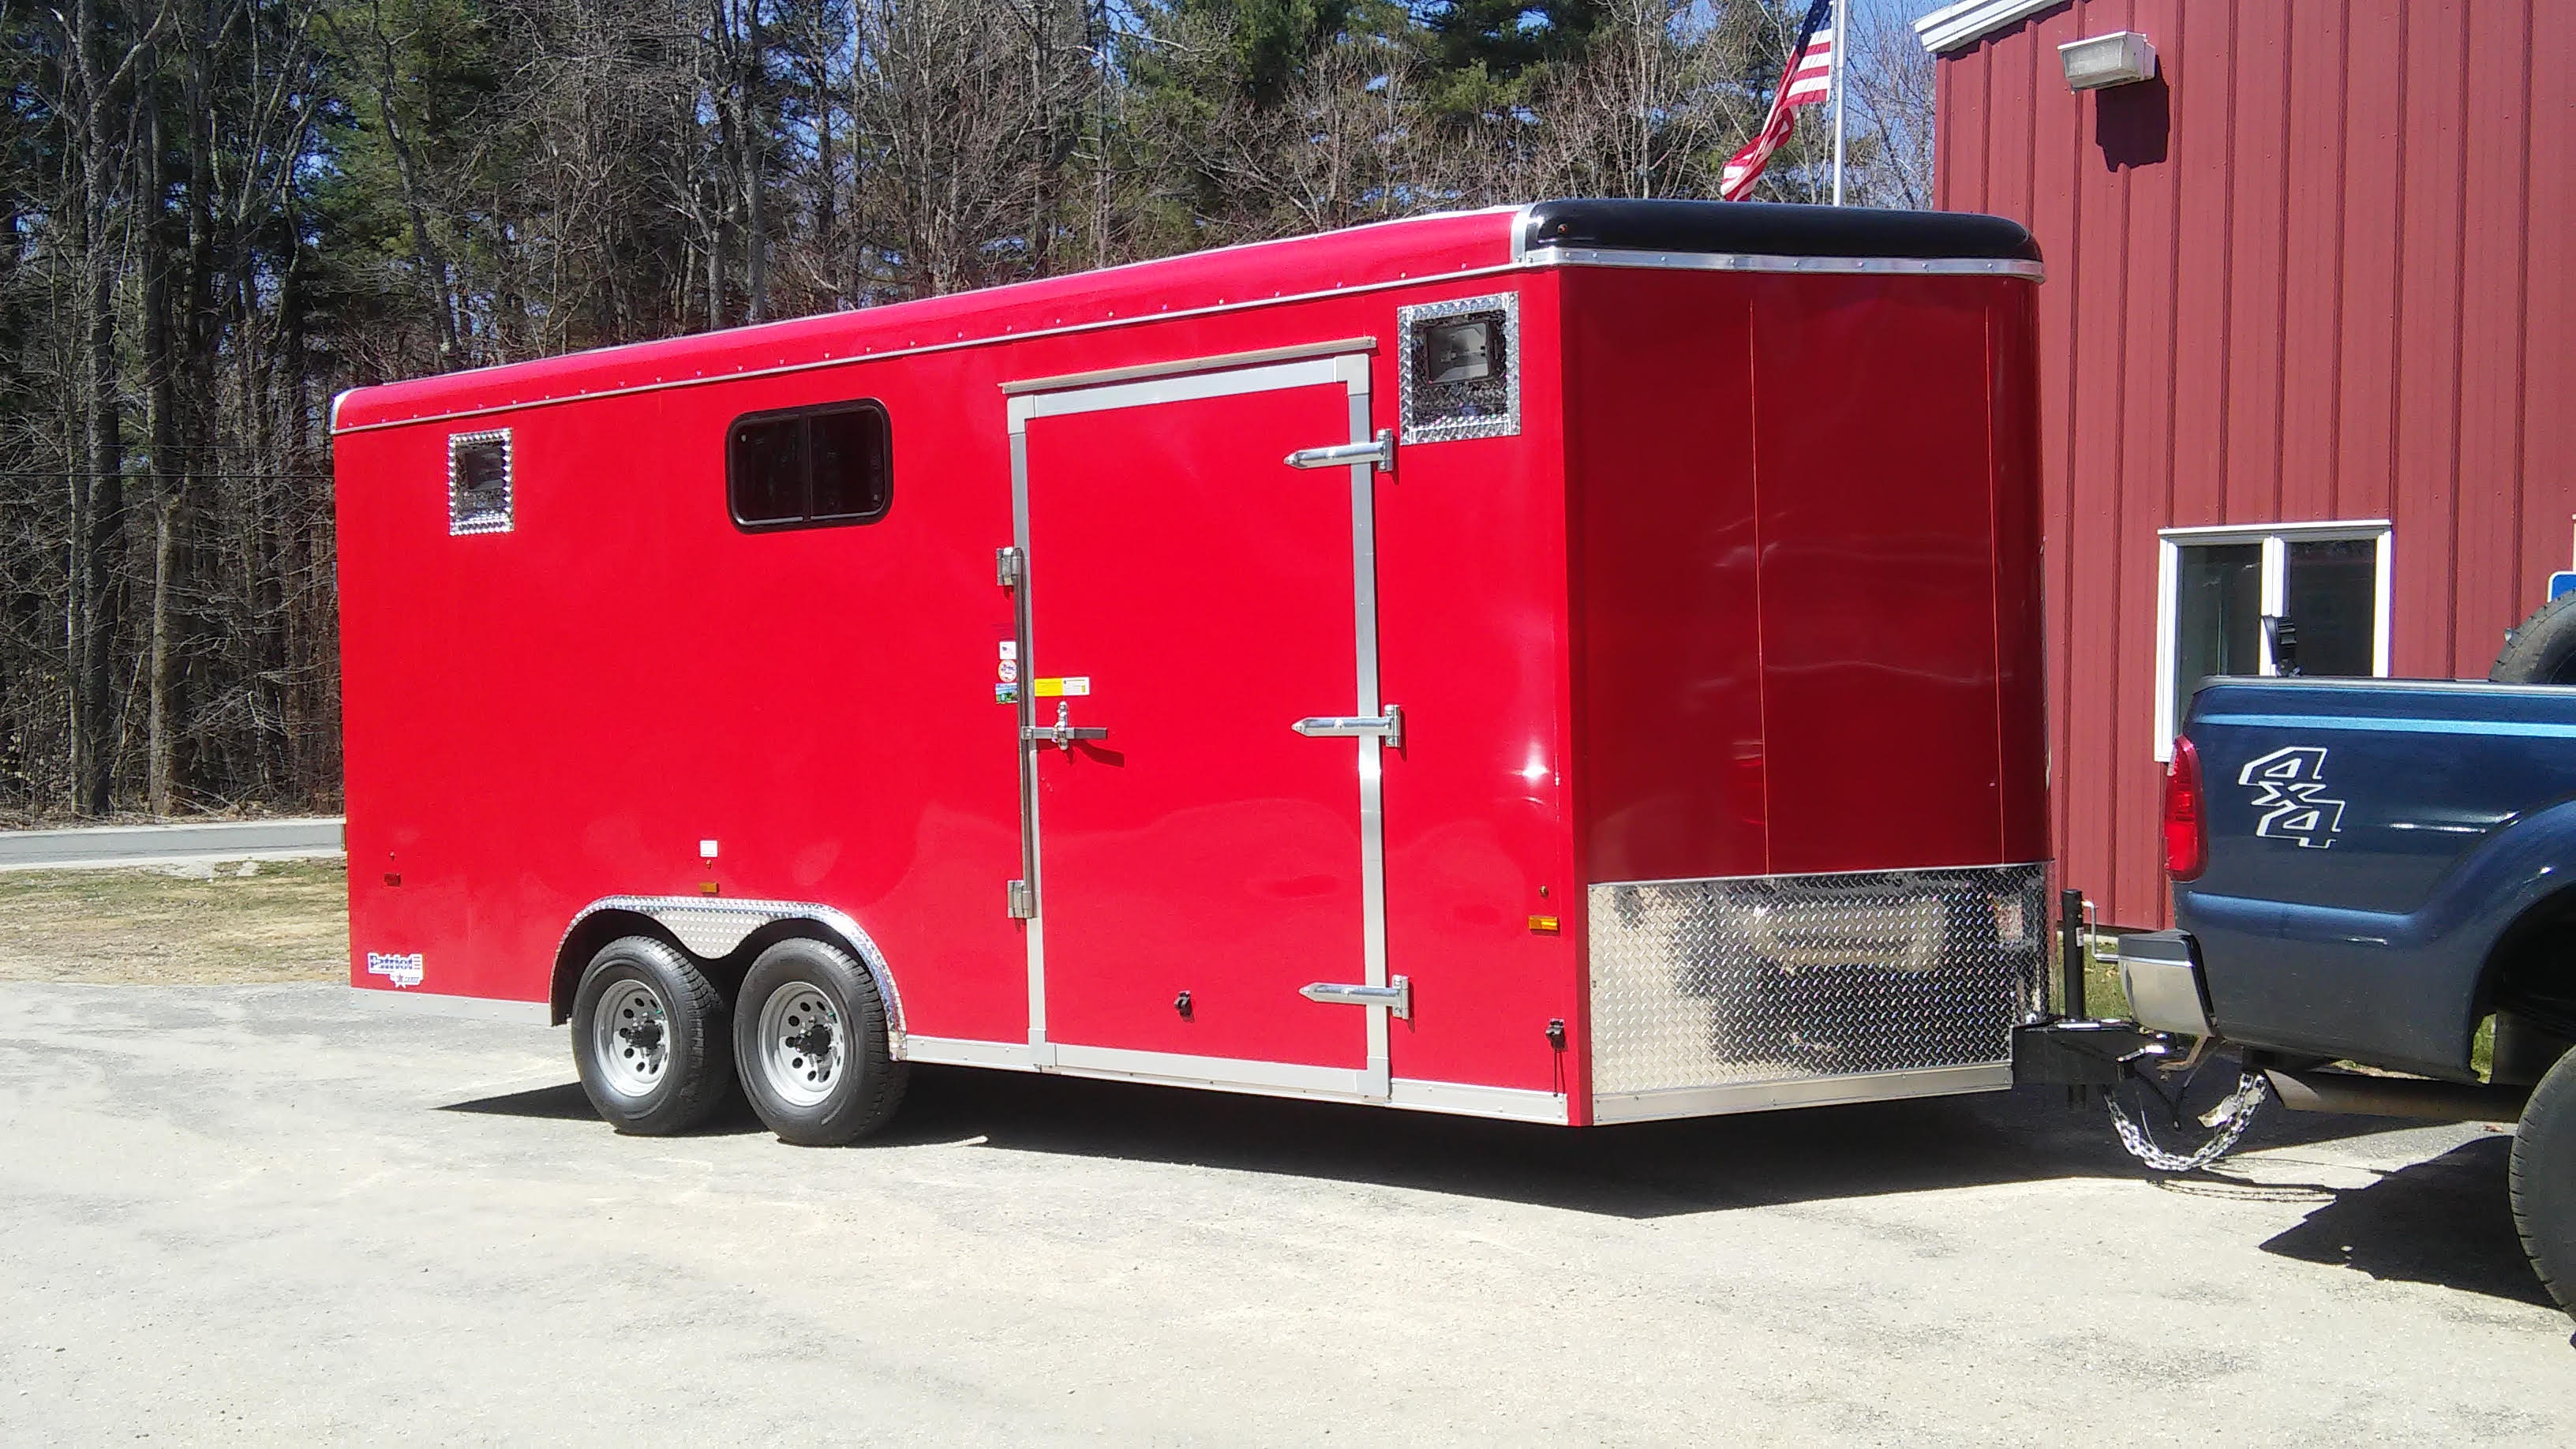 http://plainfield-ma.us/library/PVFD-2015-rescue-trailer.jpg